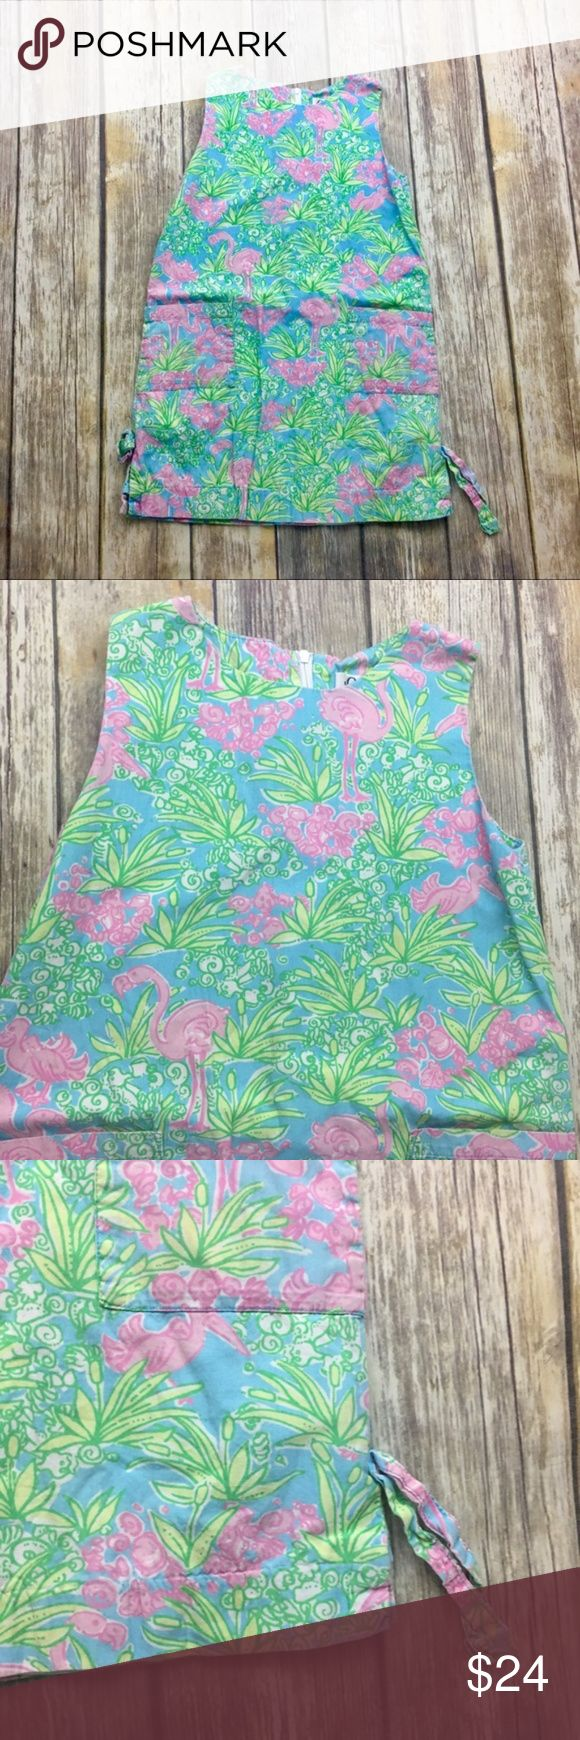 Lilly Pulitzer Tropical Flamingo Shift Dress Tropical flamingo shift dress. Size 7. Fully lined. In excellent used condition . 25 inches long. 14 inches arm pit to arm pit. Pockets and bows on sides. Light cotton and polyester material Lilly Pulitzer Dresses Casual